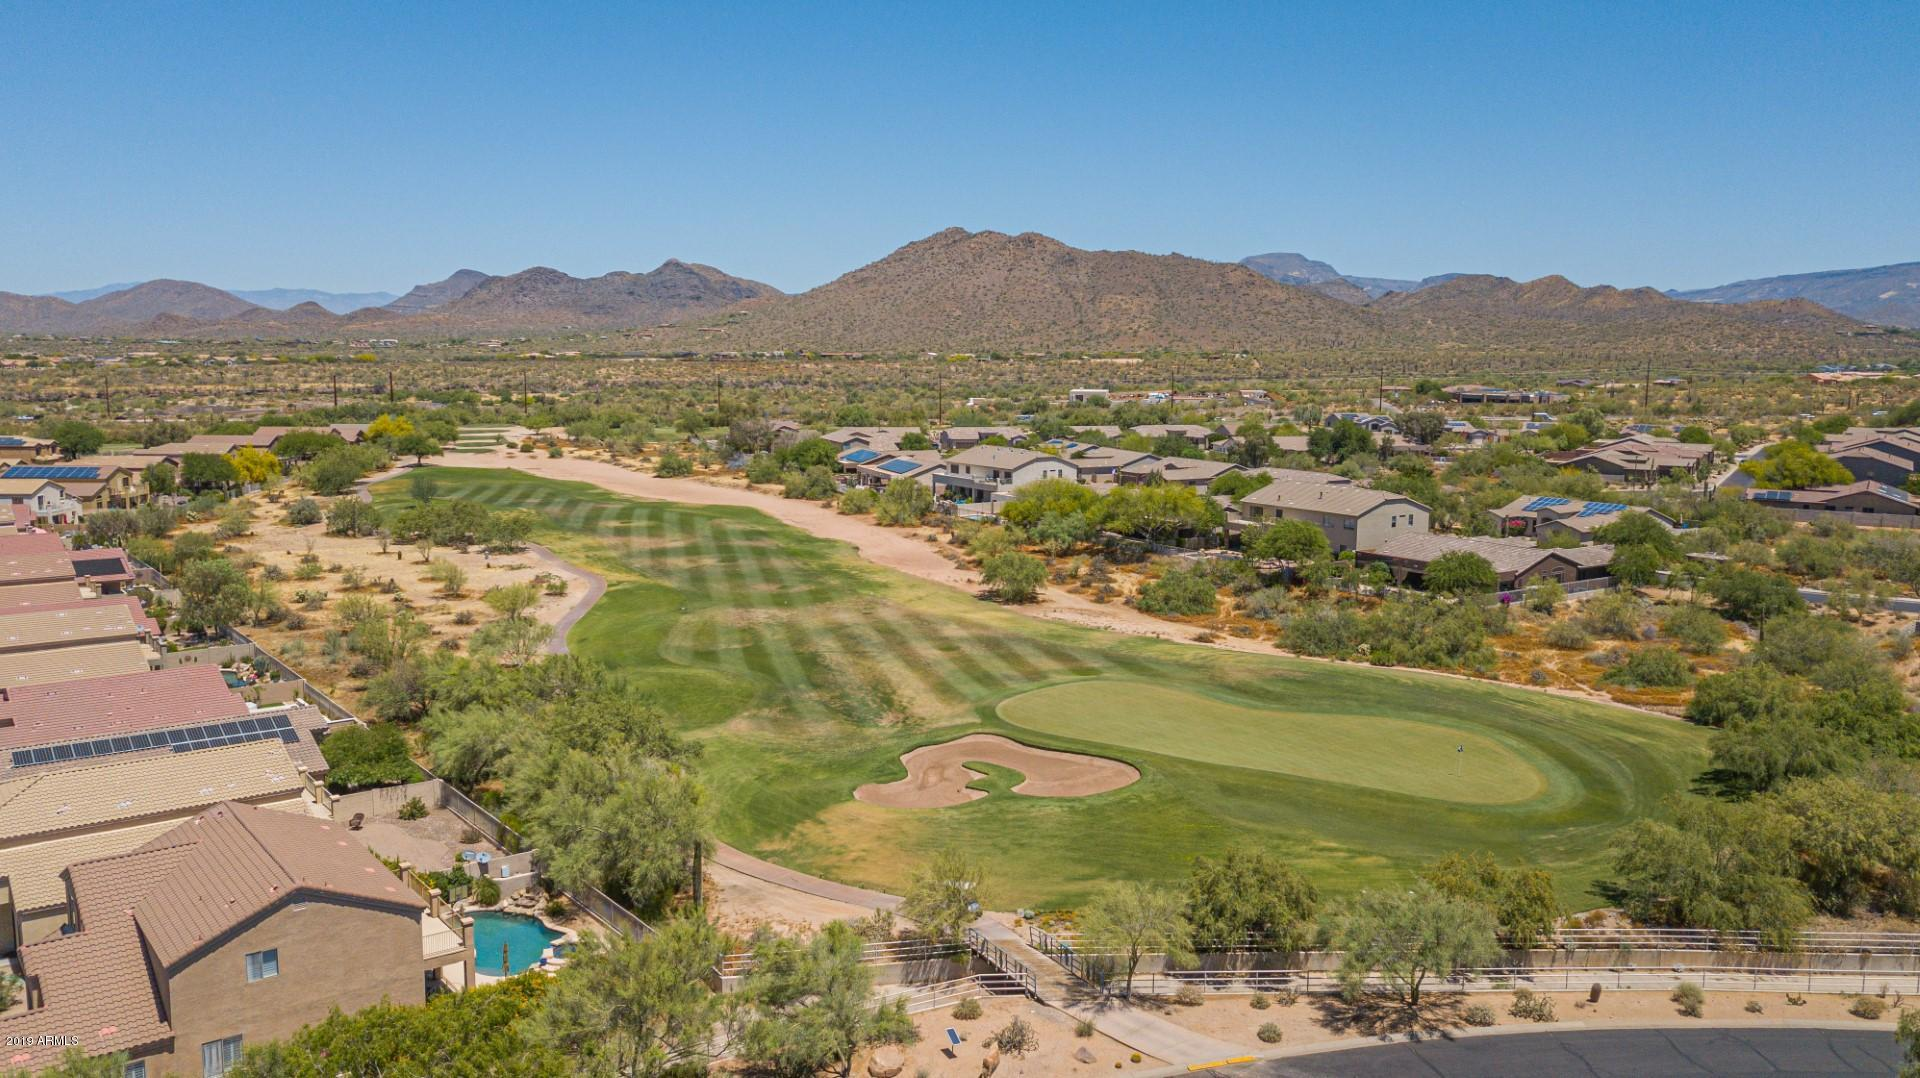 Cave Creek AZ Real Estate + Homes for Sale + Homes for